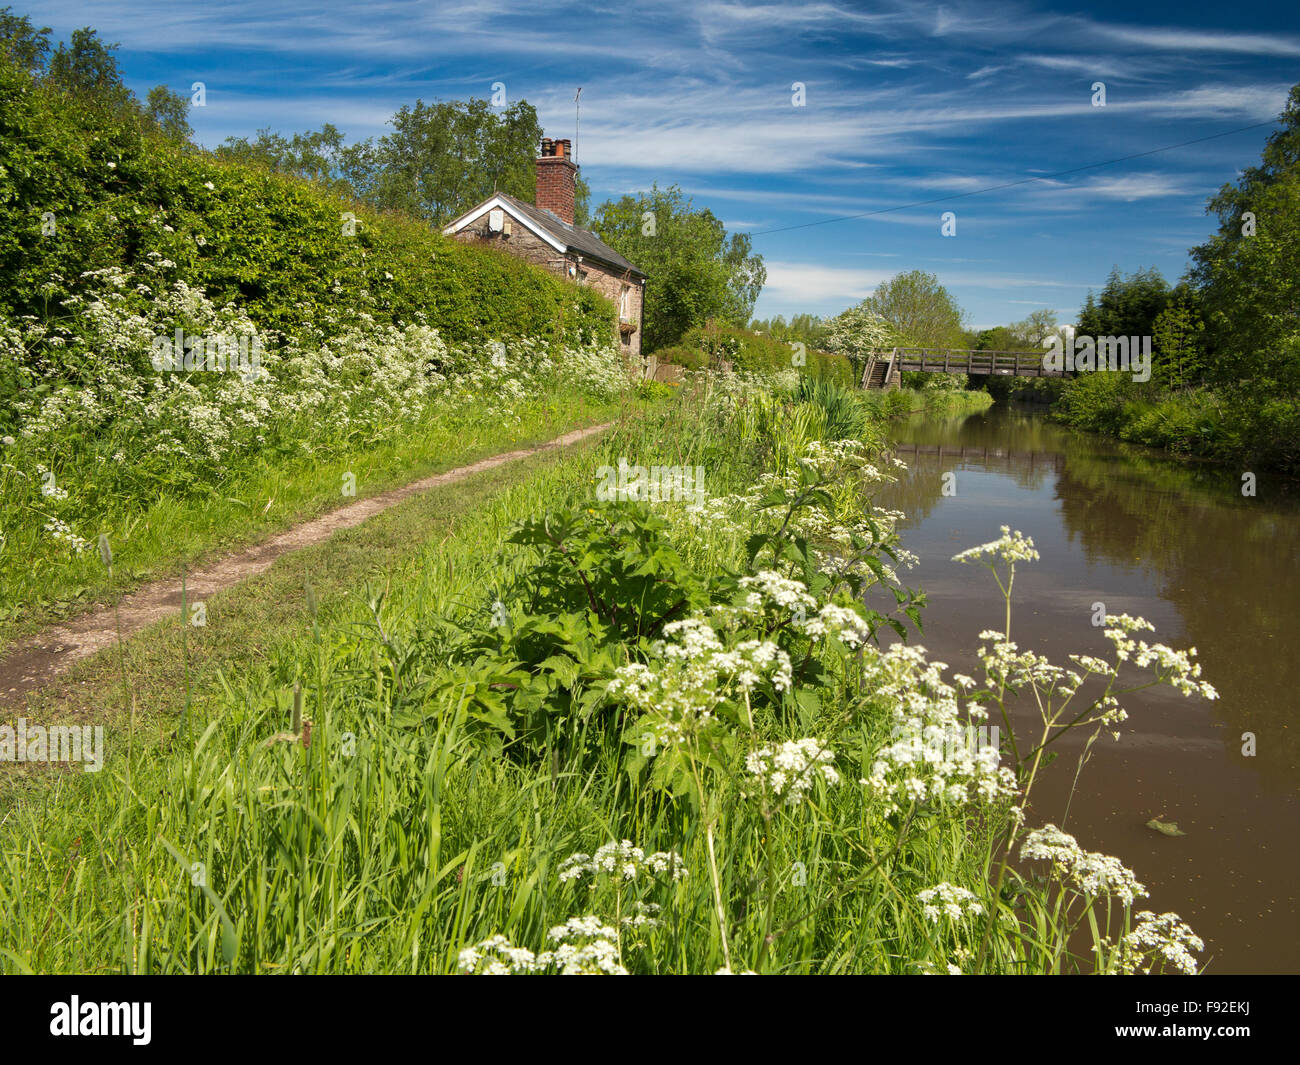 UK, England, Cheshire, Gawsworth, Fools Nook, Macclesfield Canal towpath - Stock Image